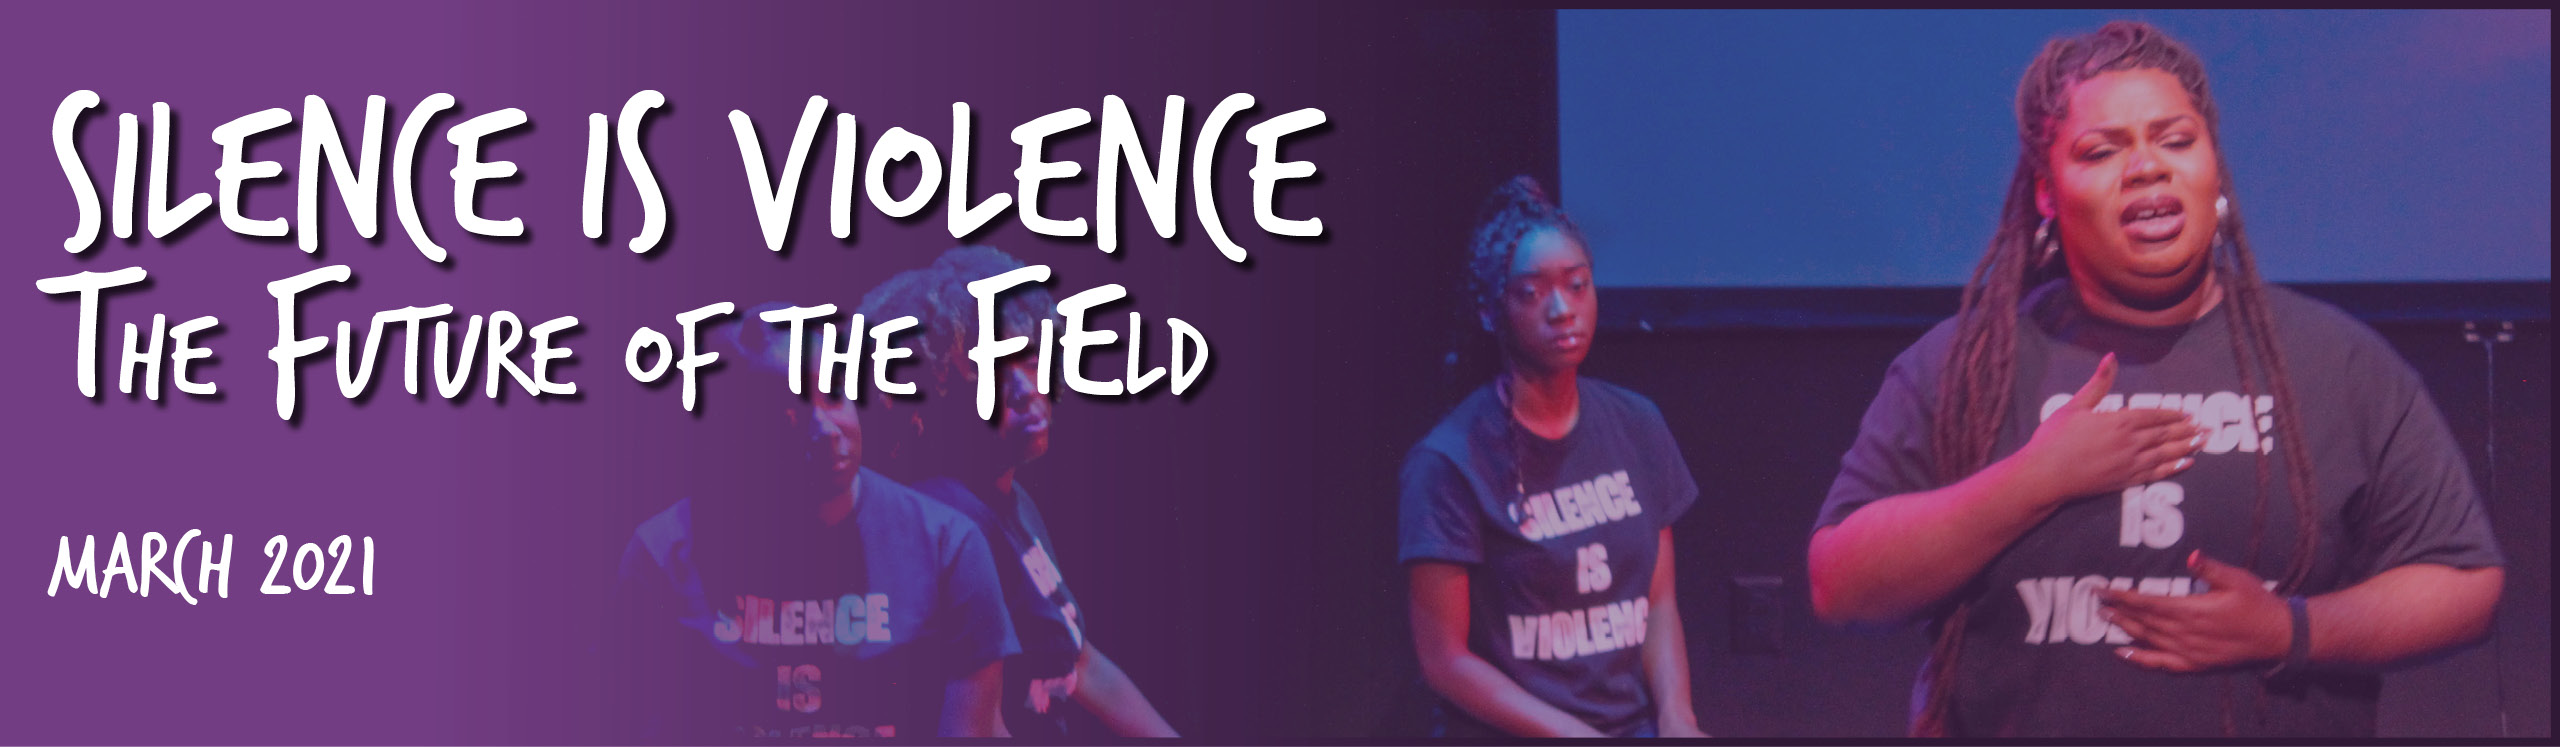 Silence is Violence: The Future of the Field